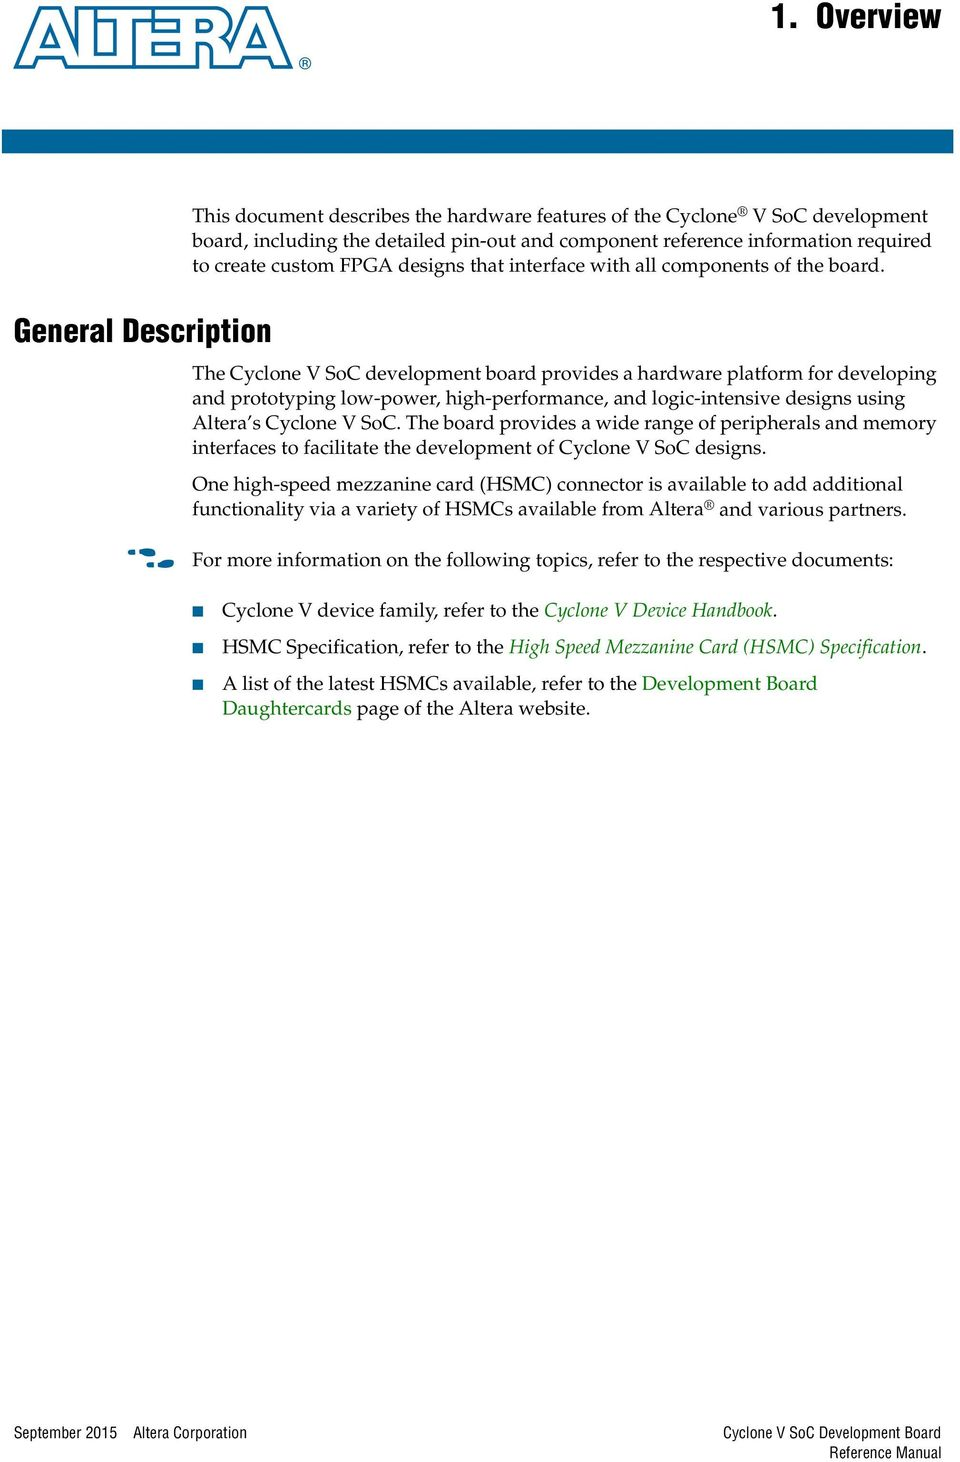 Cyclone V Hps Technical Reference Manual